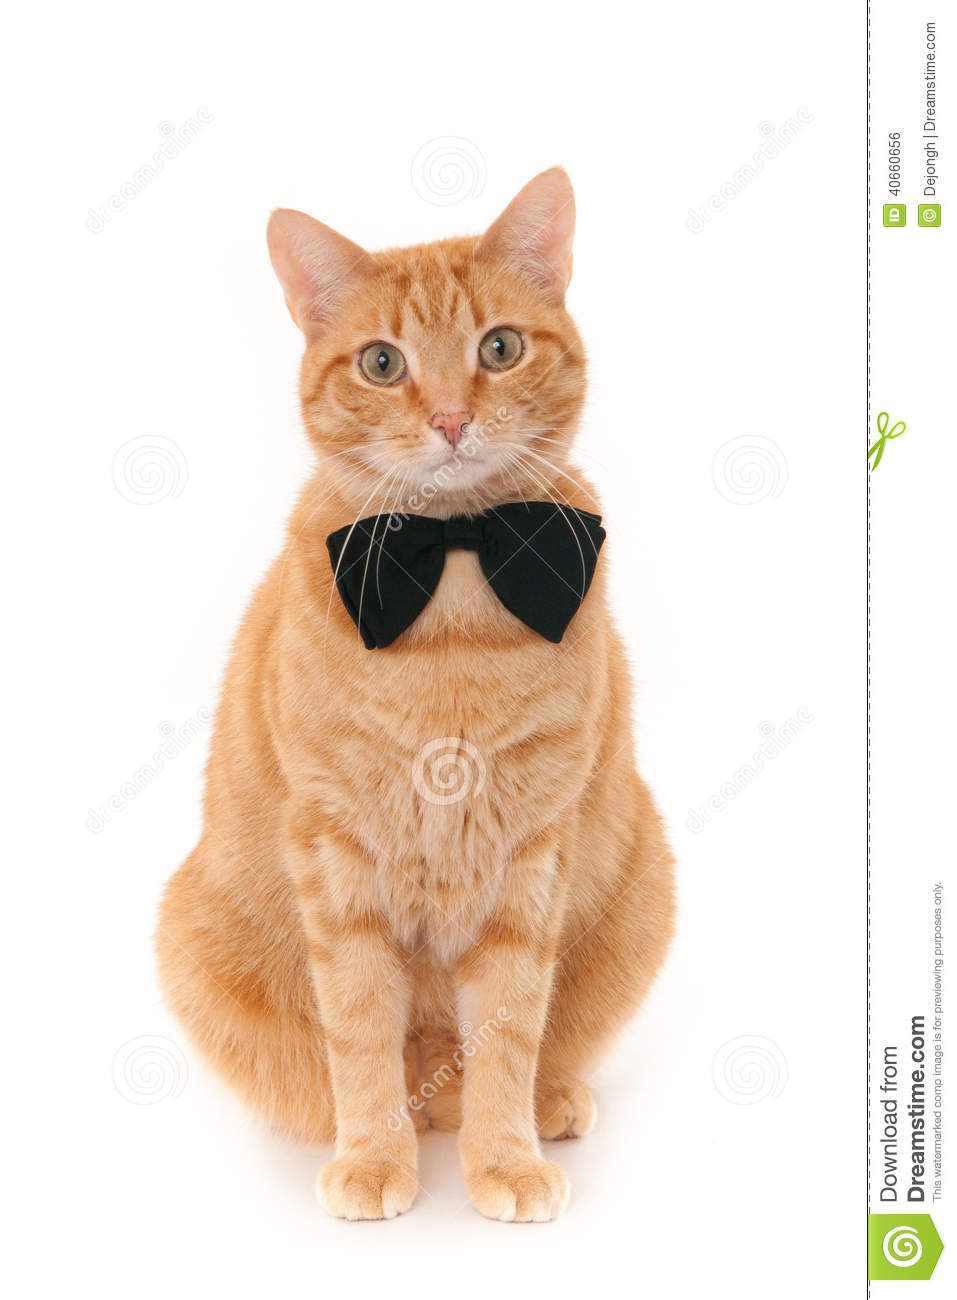 Sitting ginger cat with a black bow tie, isolated on a white ...